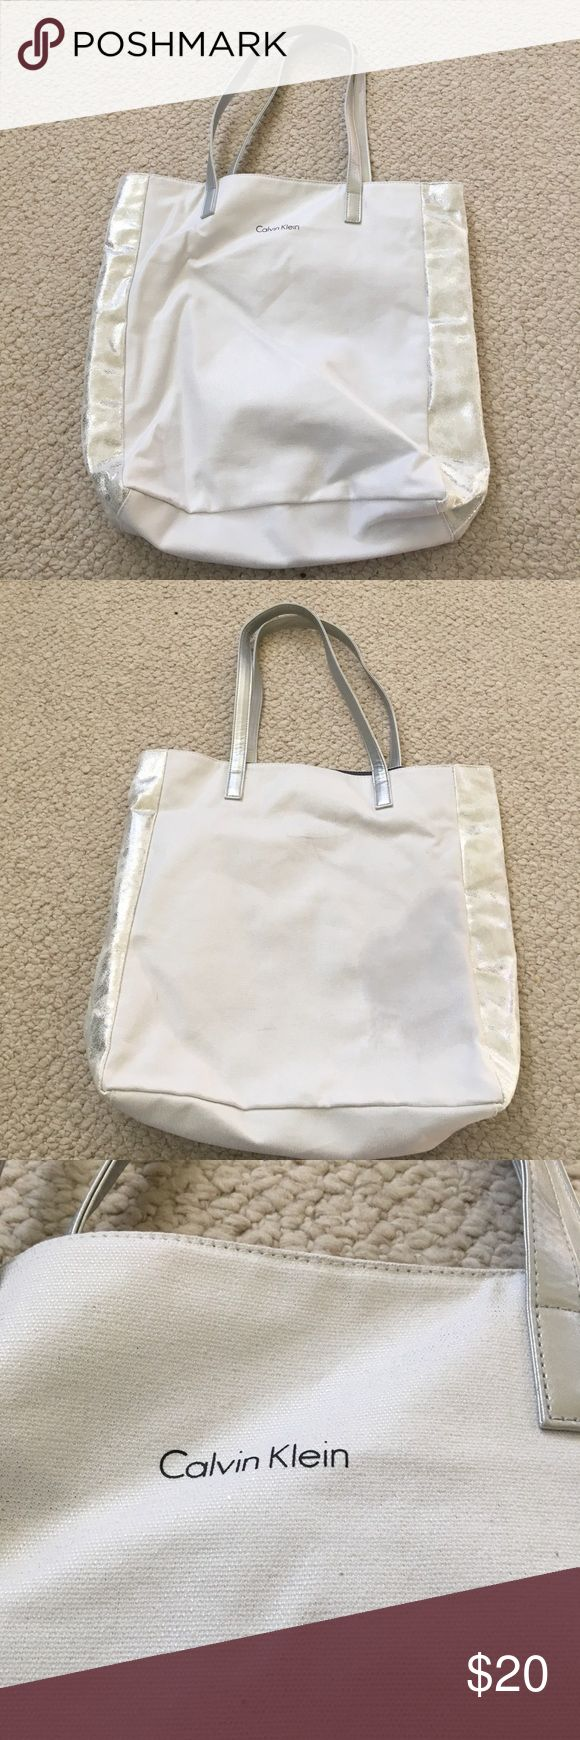 Calvin Klein Silver Tote Bag Great condition tote from Calvin Klein. Silver canvas style with shimmery details on sides, used one or two times. Has some marks but they could probably be removed easily and aren't very noticeable. Has attached coin purse to store inside and a zipper compartment as well. Calvin Klein Bags Totes